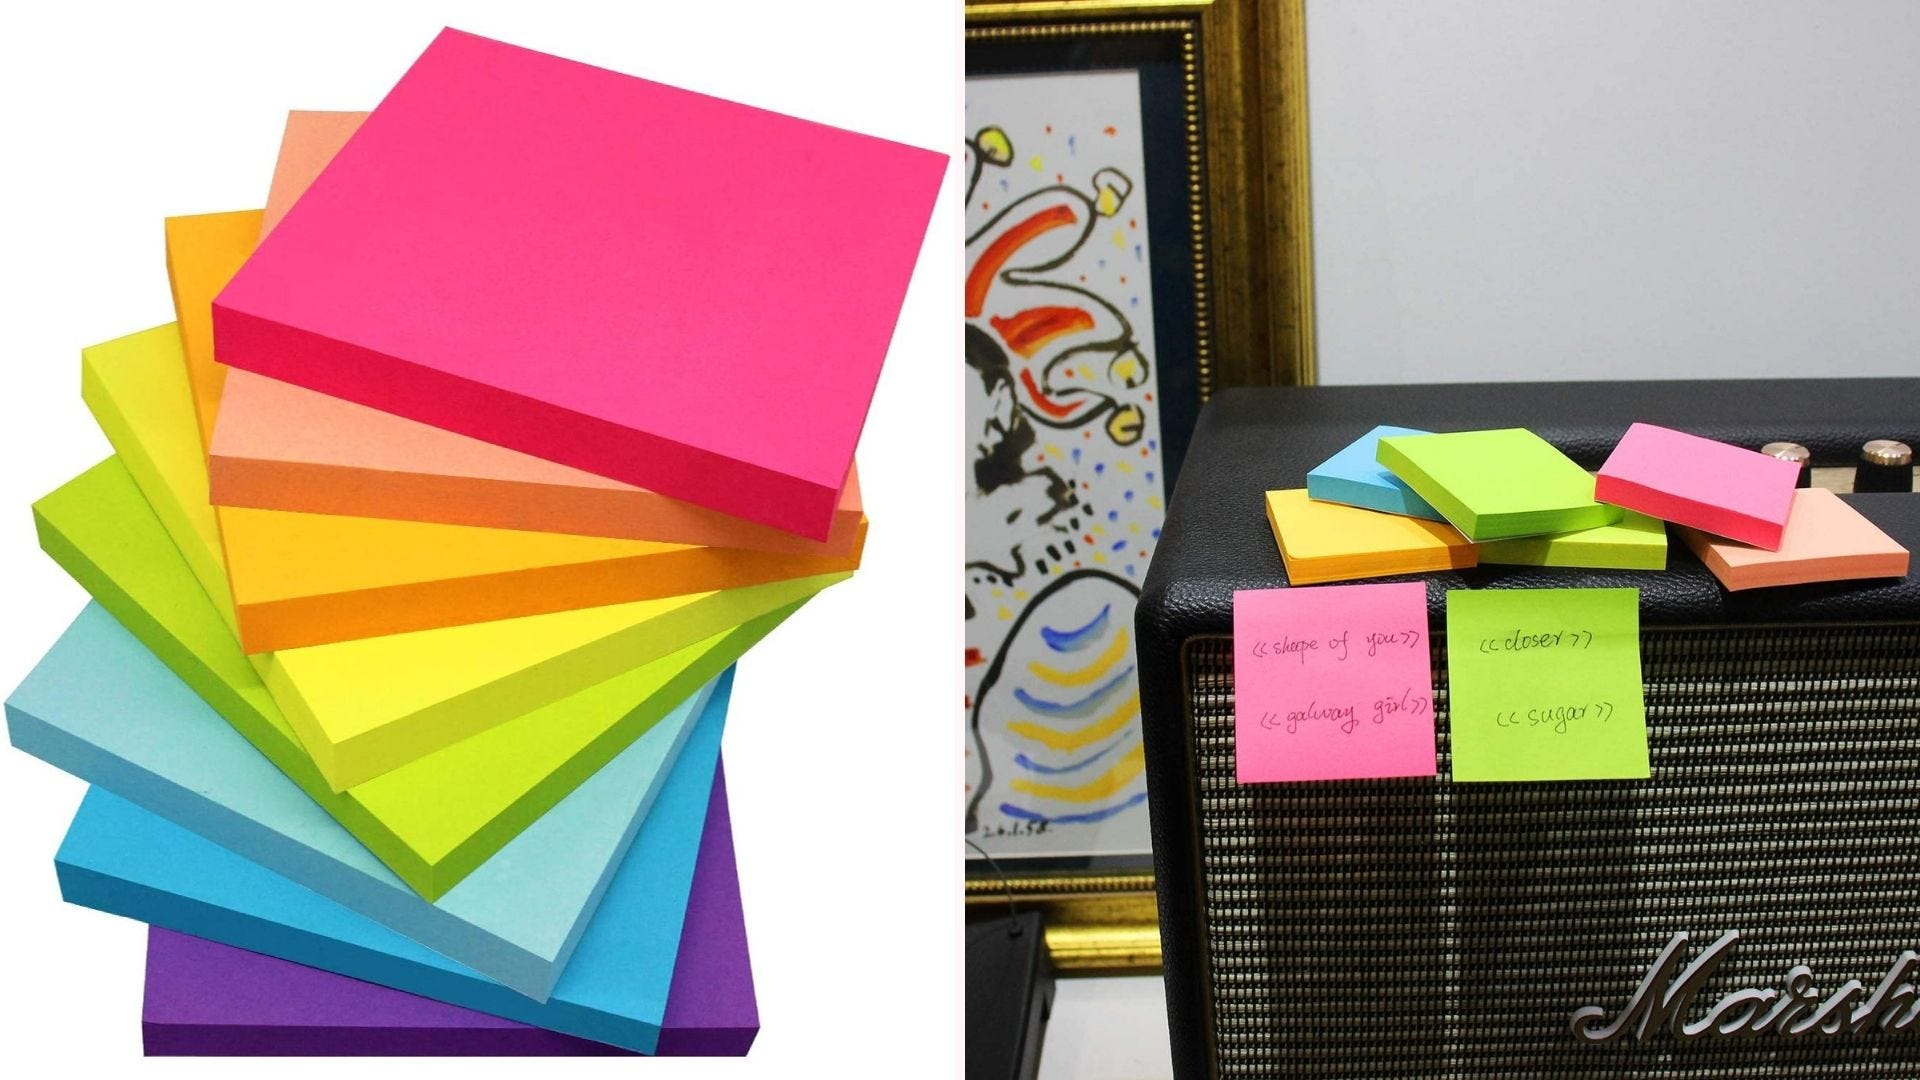 On the left, a multicolor stack of sticky note pads. On the right, two sticky notes with written information are placed on the side of an amplifier.